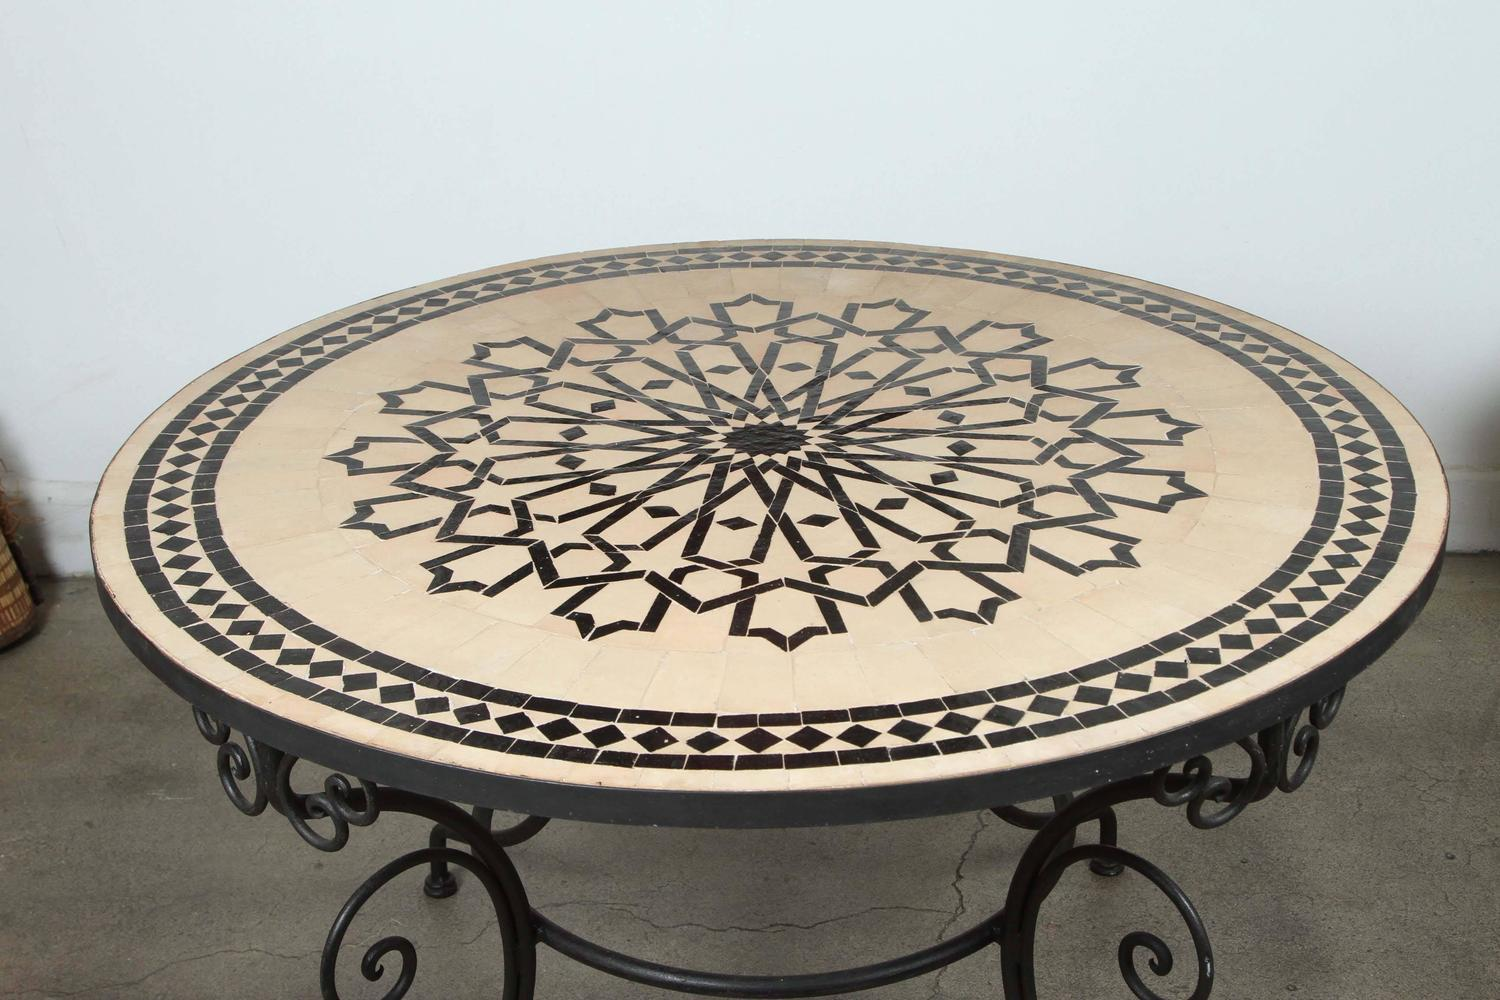 Moroccan Outdoor Round Mosaic Tile Dining Table On Iron